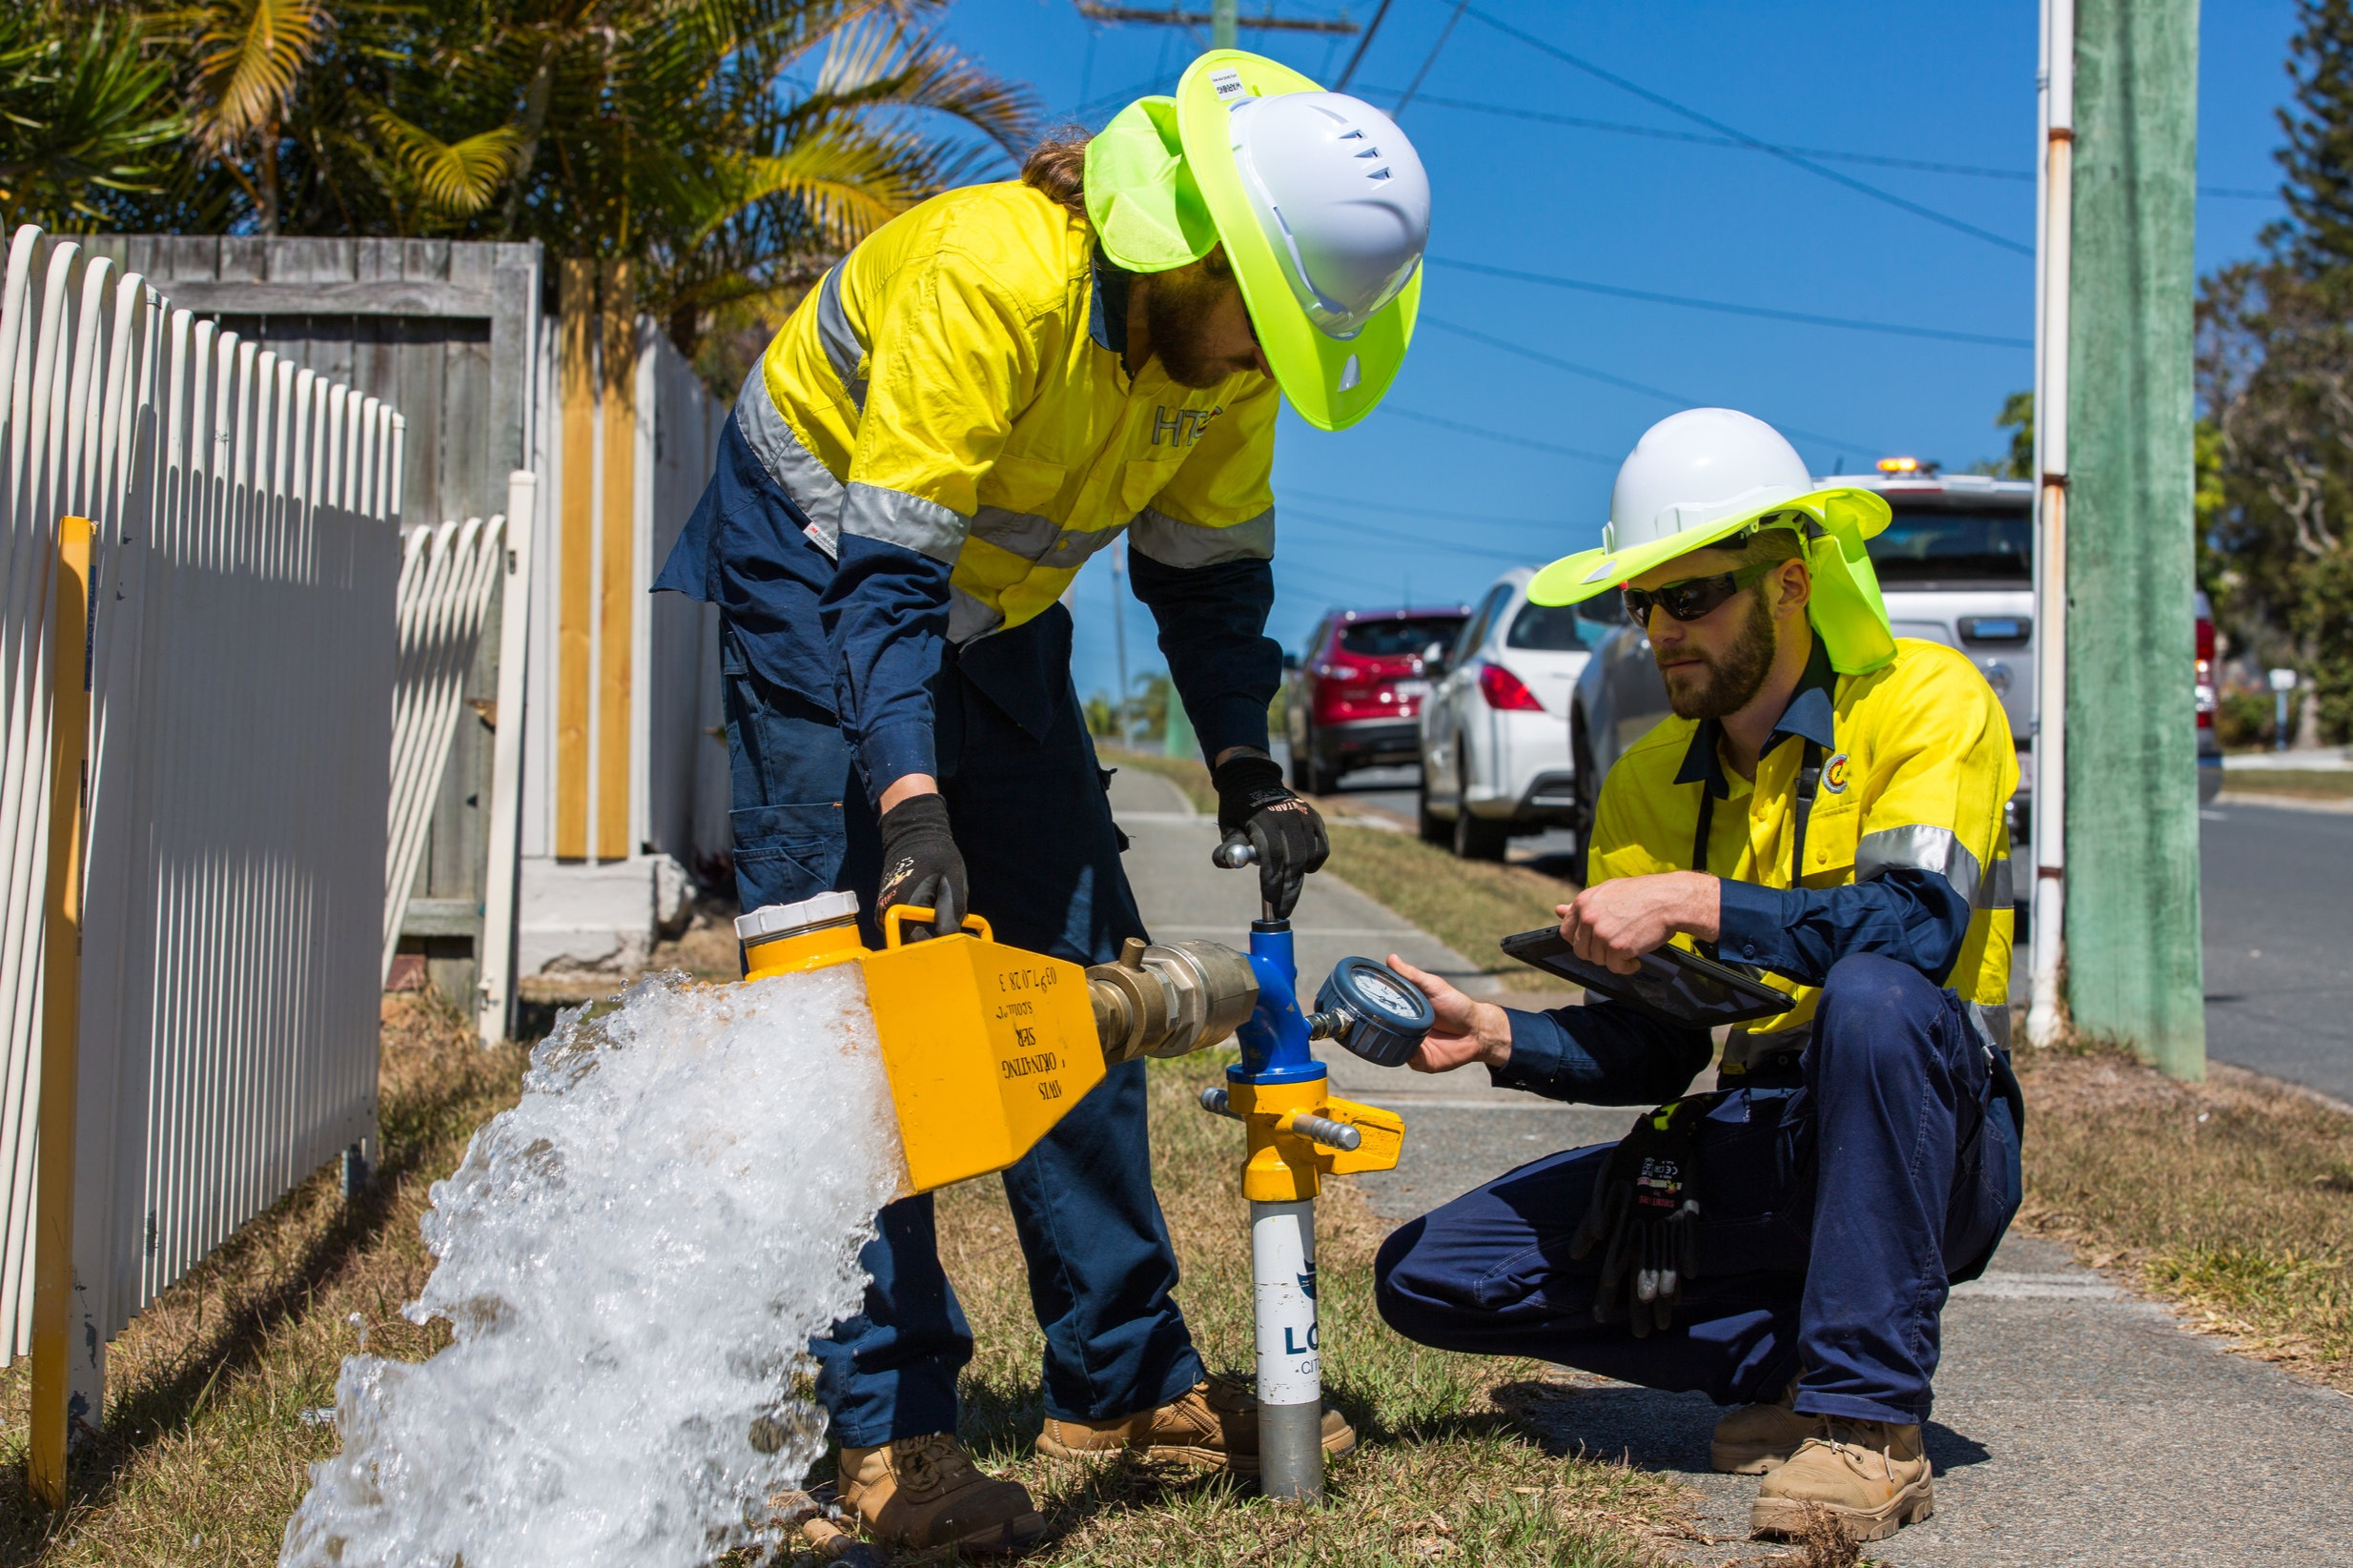 Fire hydrant flow testing in Logan. Image courtesy of the Logan WIA.